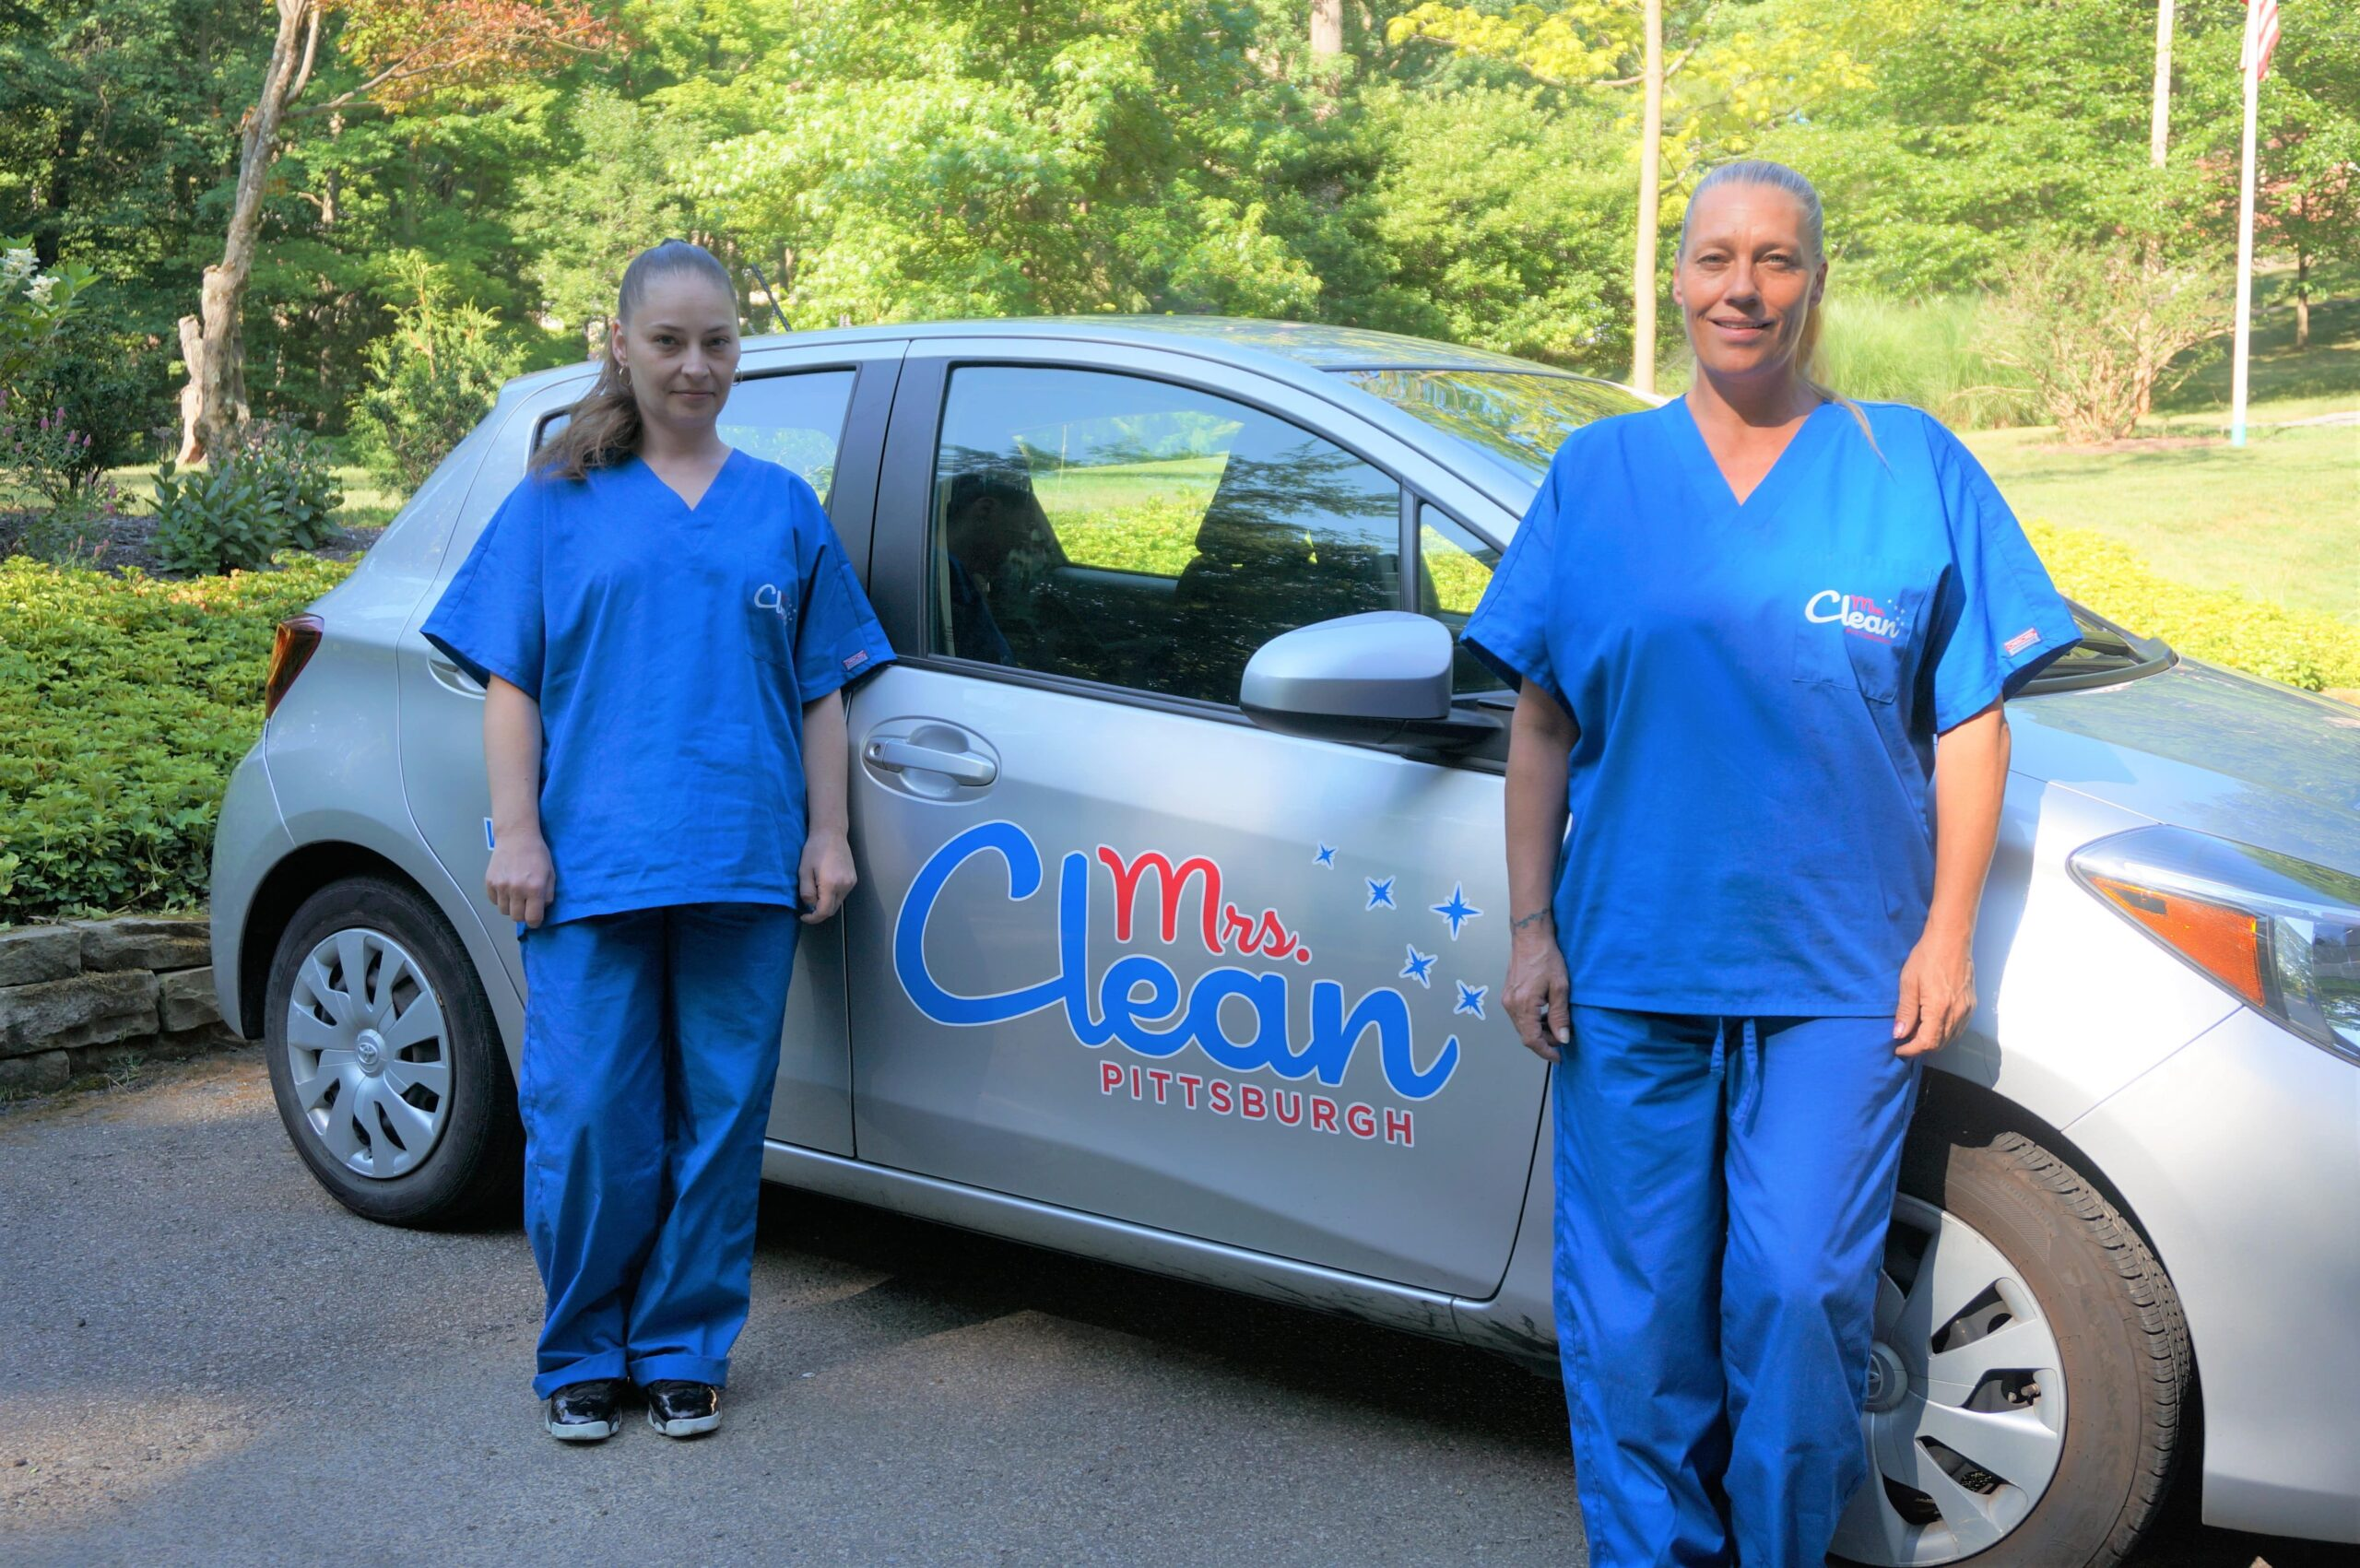 bathroom cleaning service, move out clean, pittsburgh pa home cleaner, house cleaning near me, mrs clean, pittsburgh maids, maids near me, cleaners near me, mrs clean car, cleaning car decal